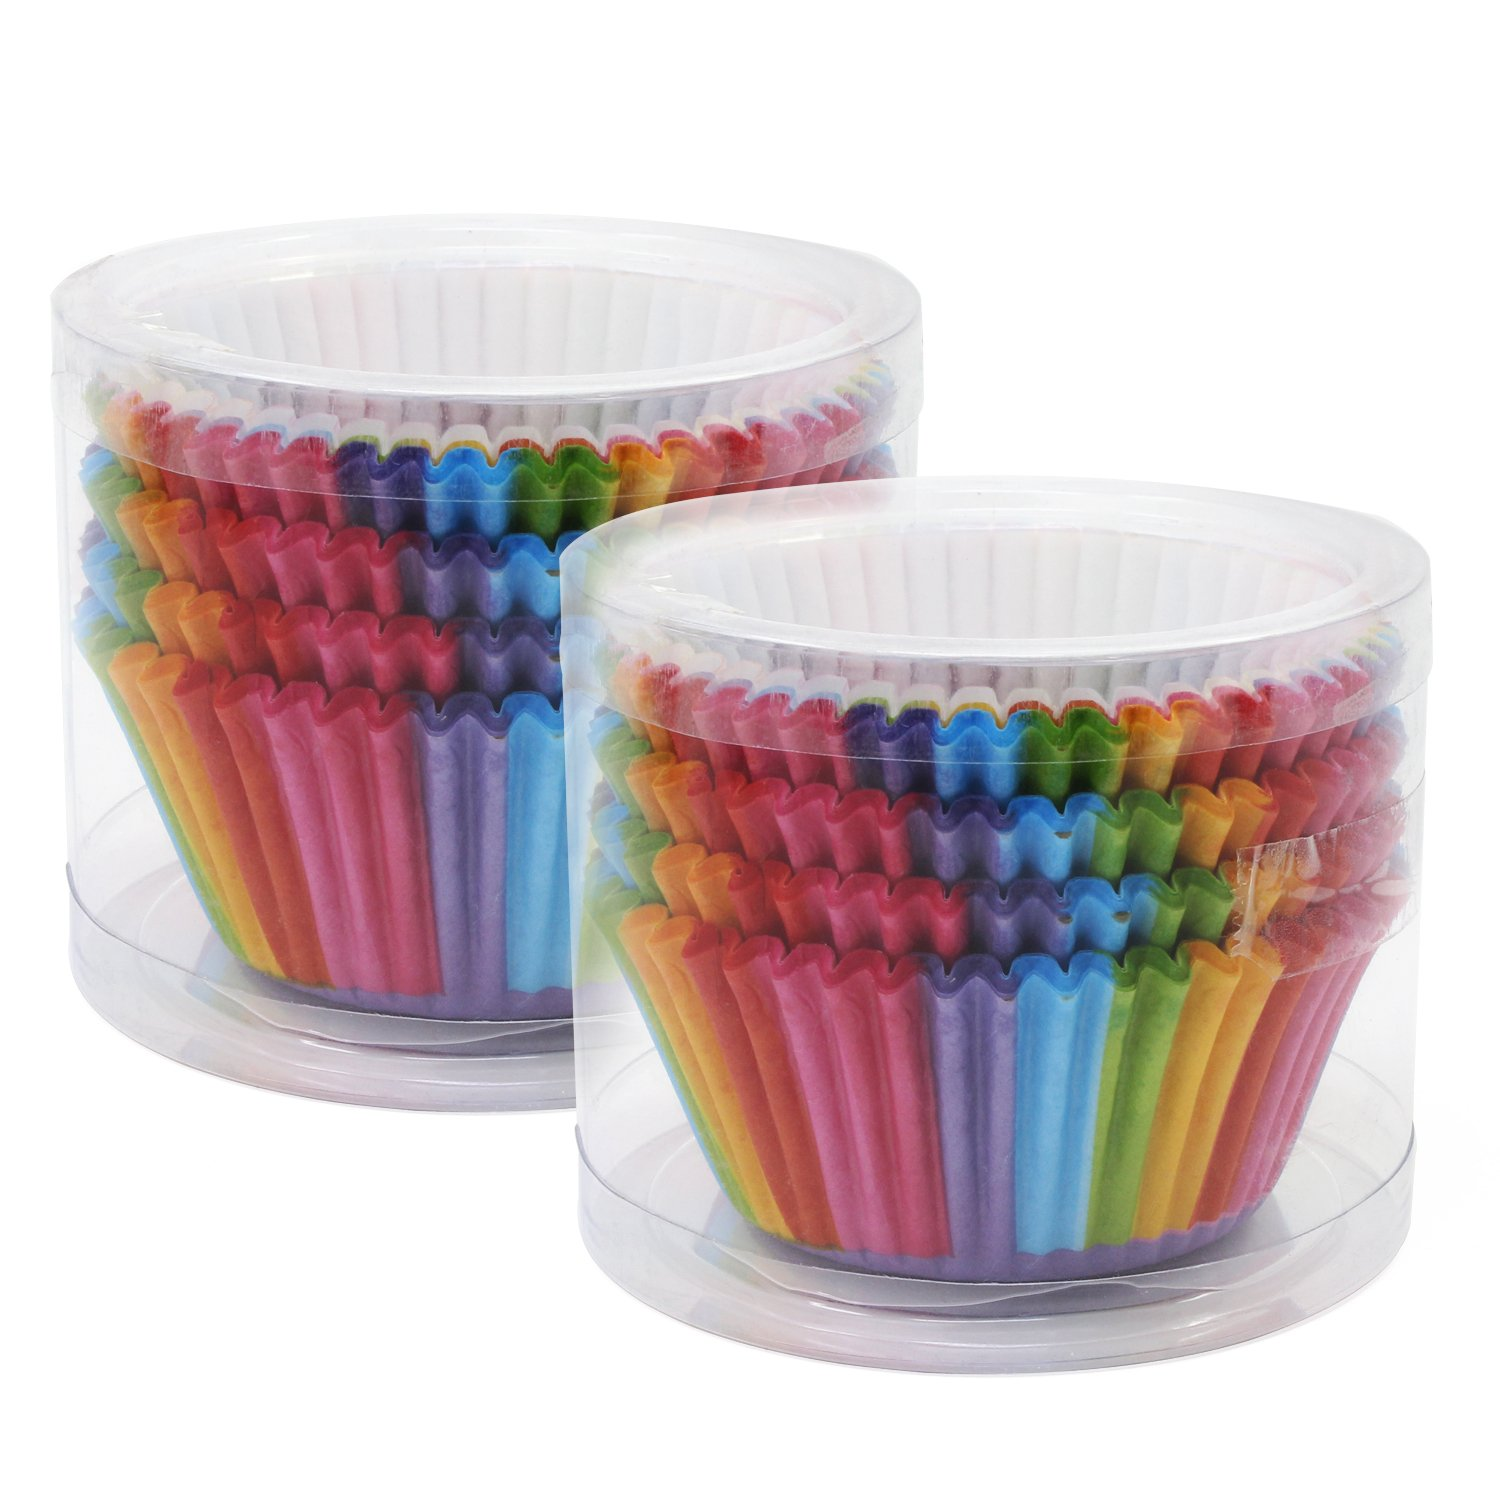 OCR Paper Baking Cups Cake Liners Cupcake Muffin Cake Wrappers 200PCS (Gift pattern) Ocrtech